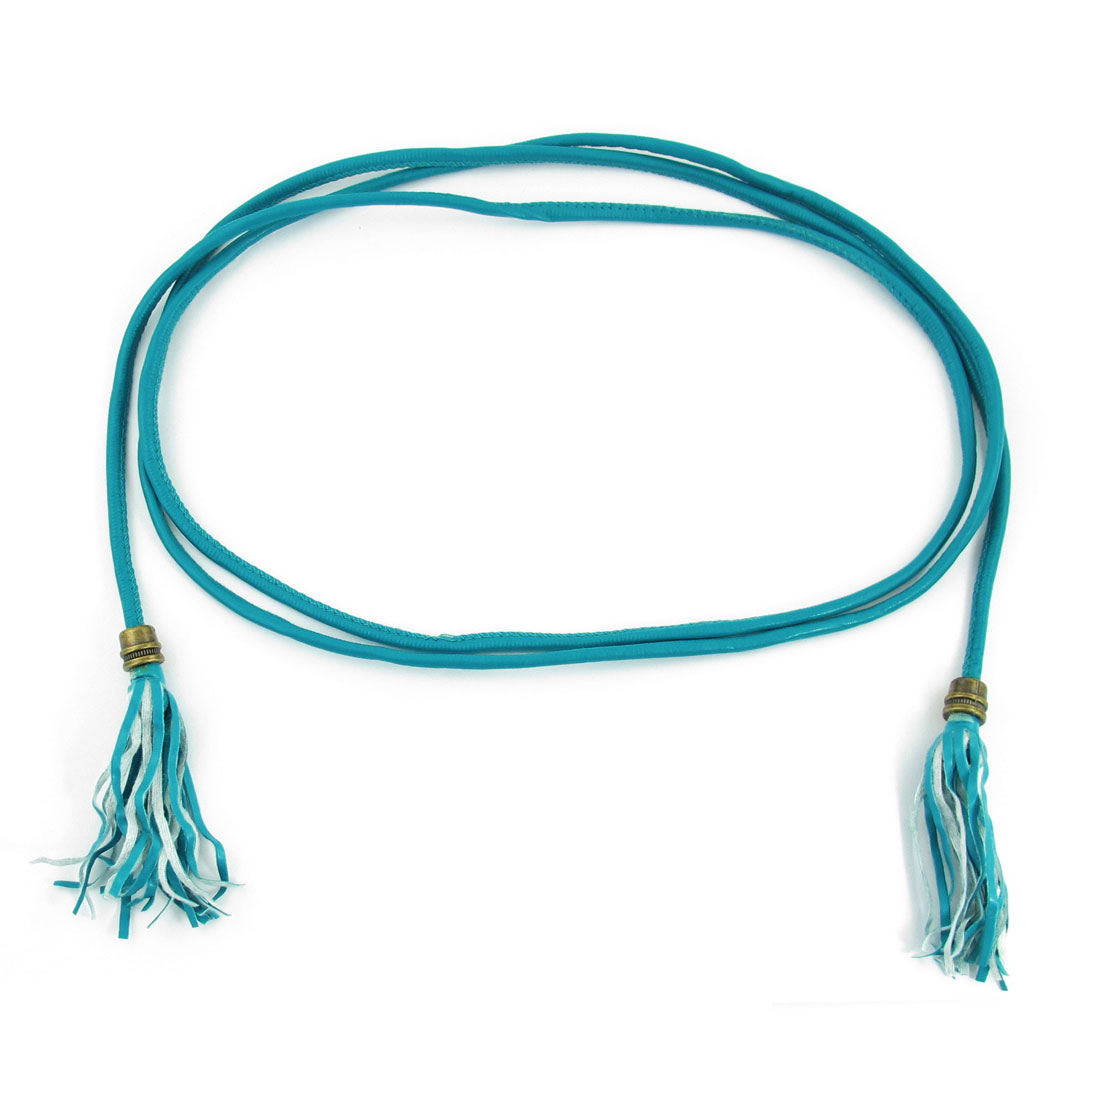 Ladies Tassels Ornament Slim Faux Leather Waistband Belt Teal